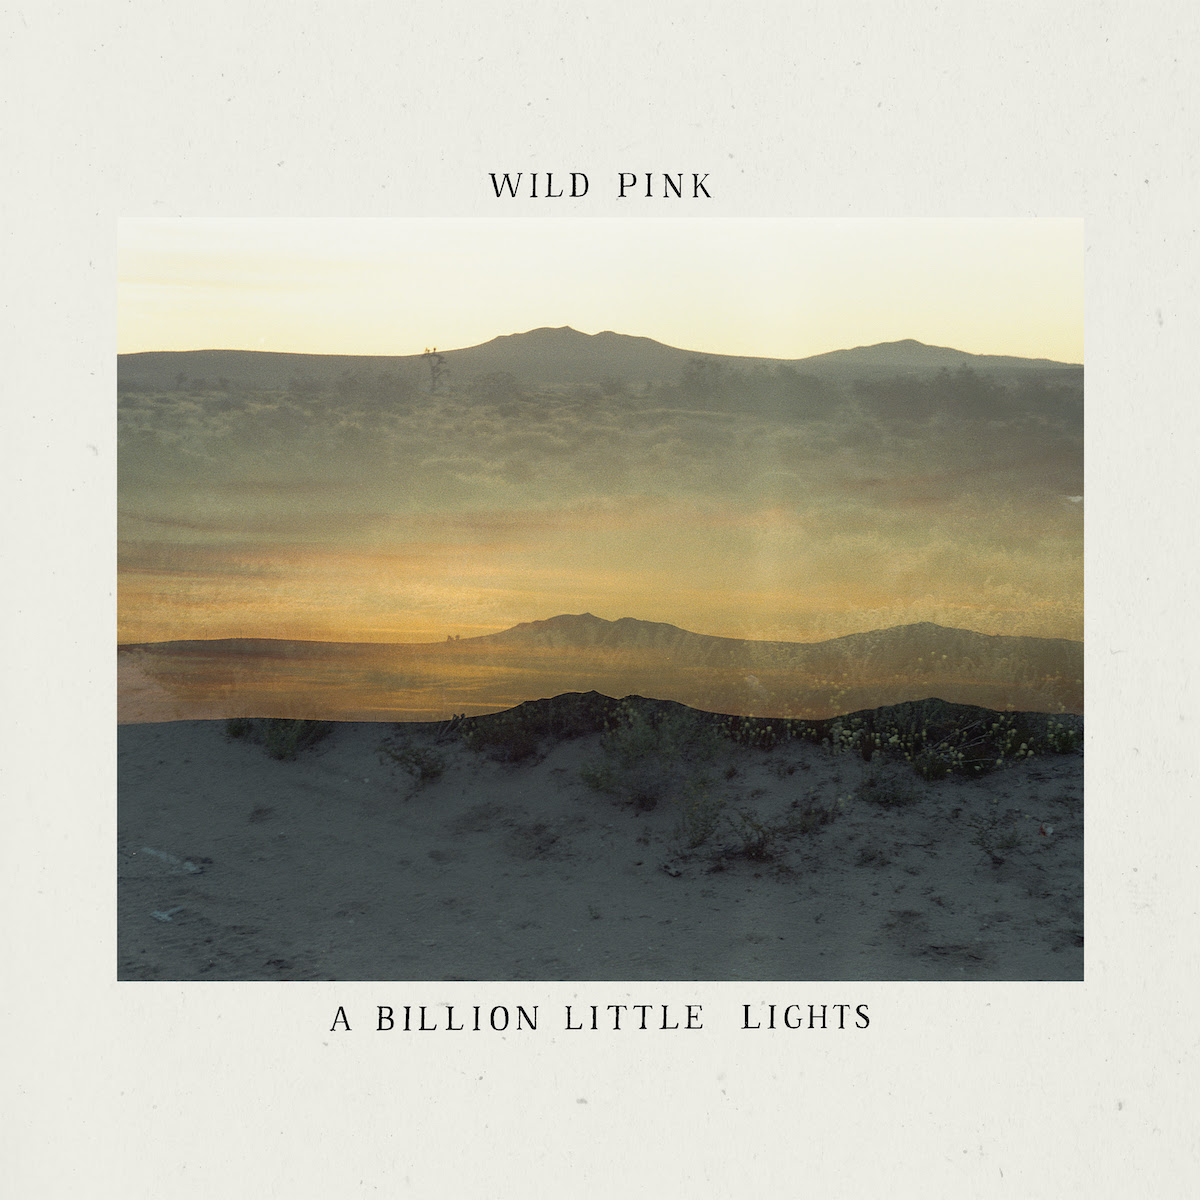 wild pink a billion little lights album cover art Wild Pink Announce New Album A Billion Little Lights, Share The Shining But Tropical: Stream